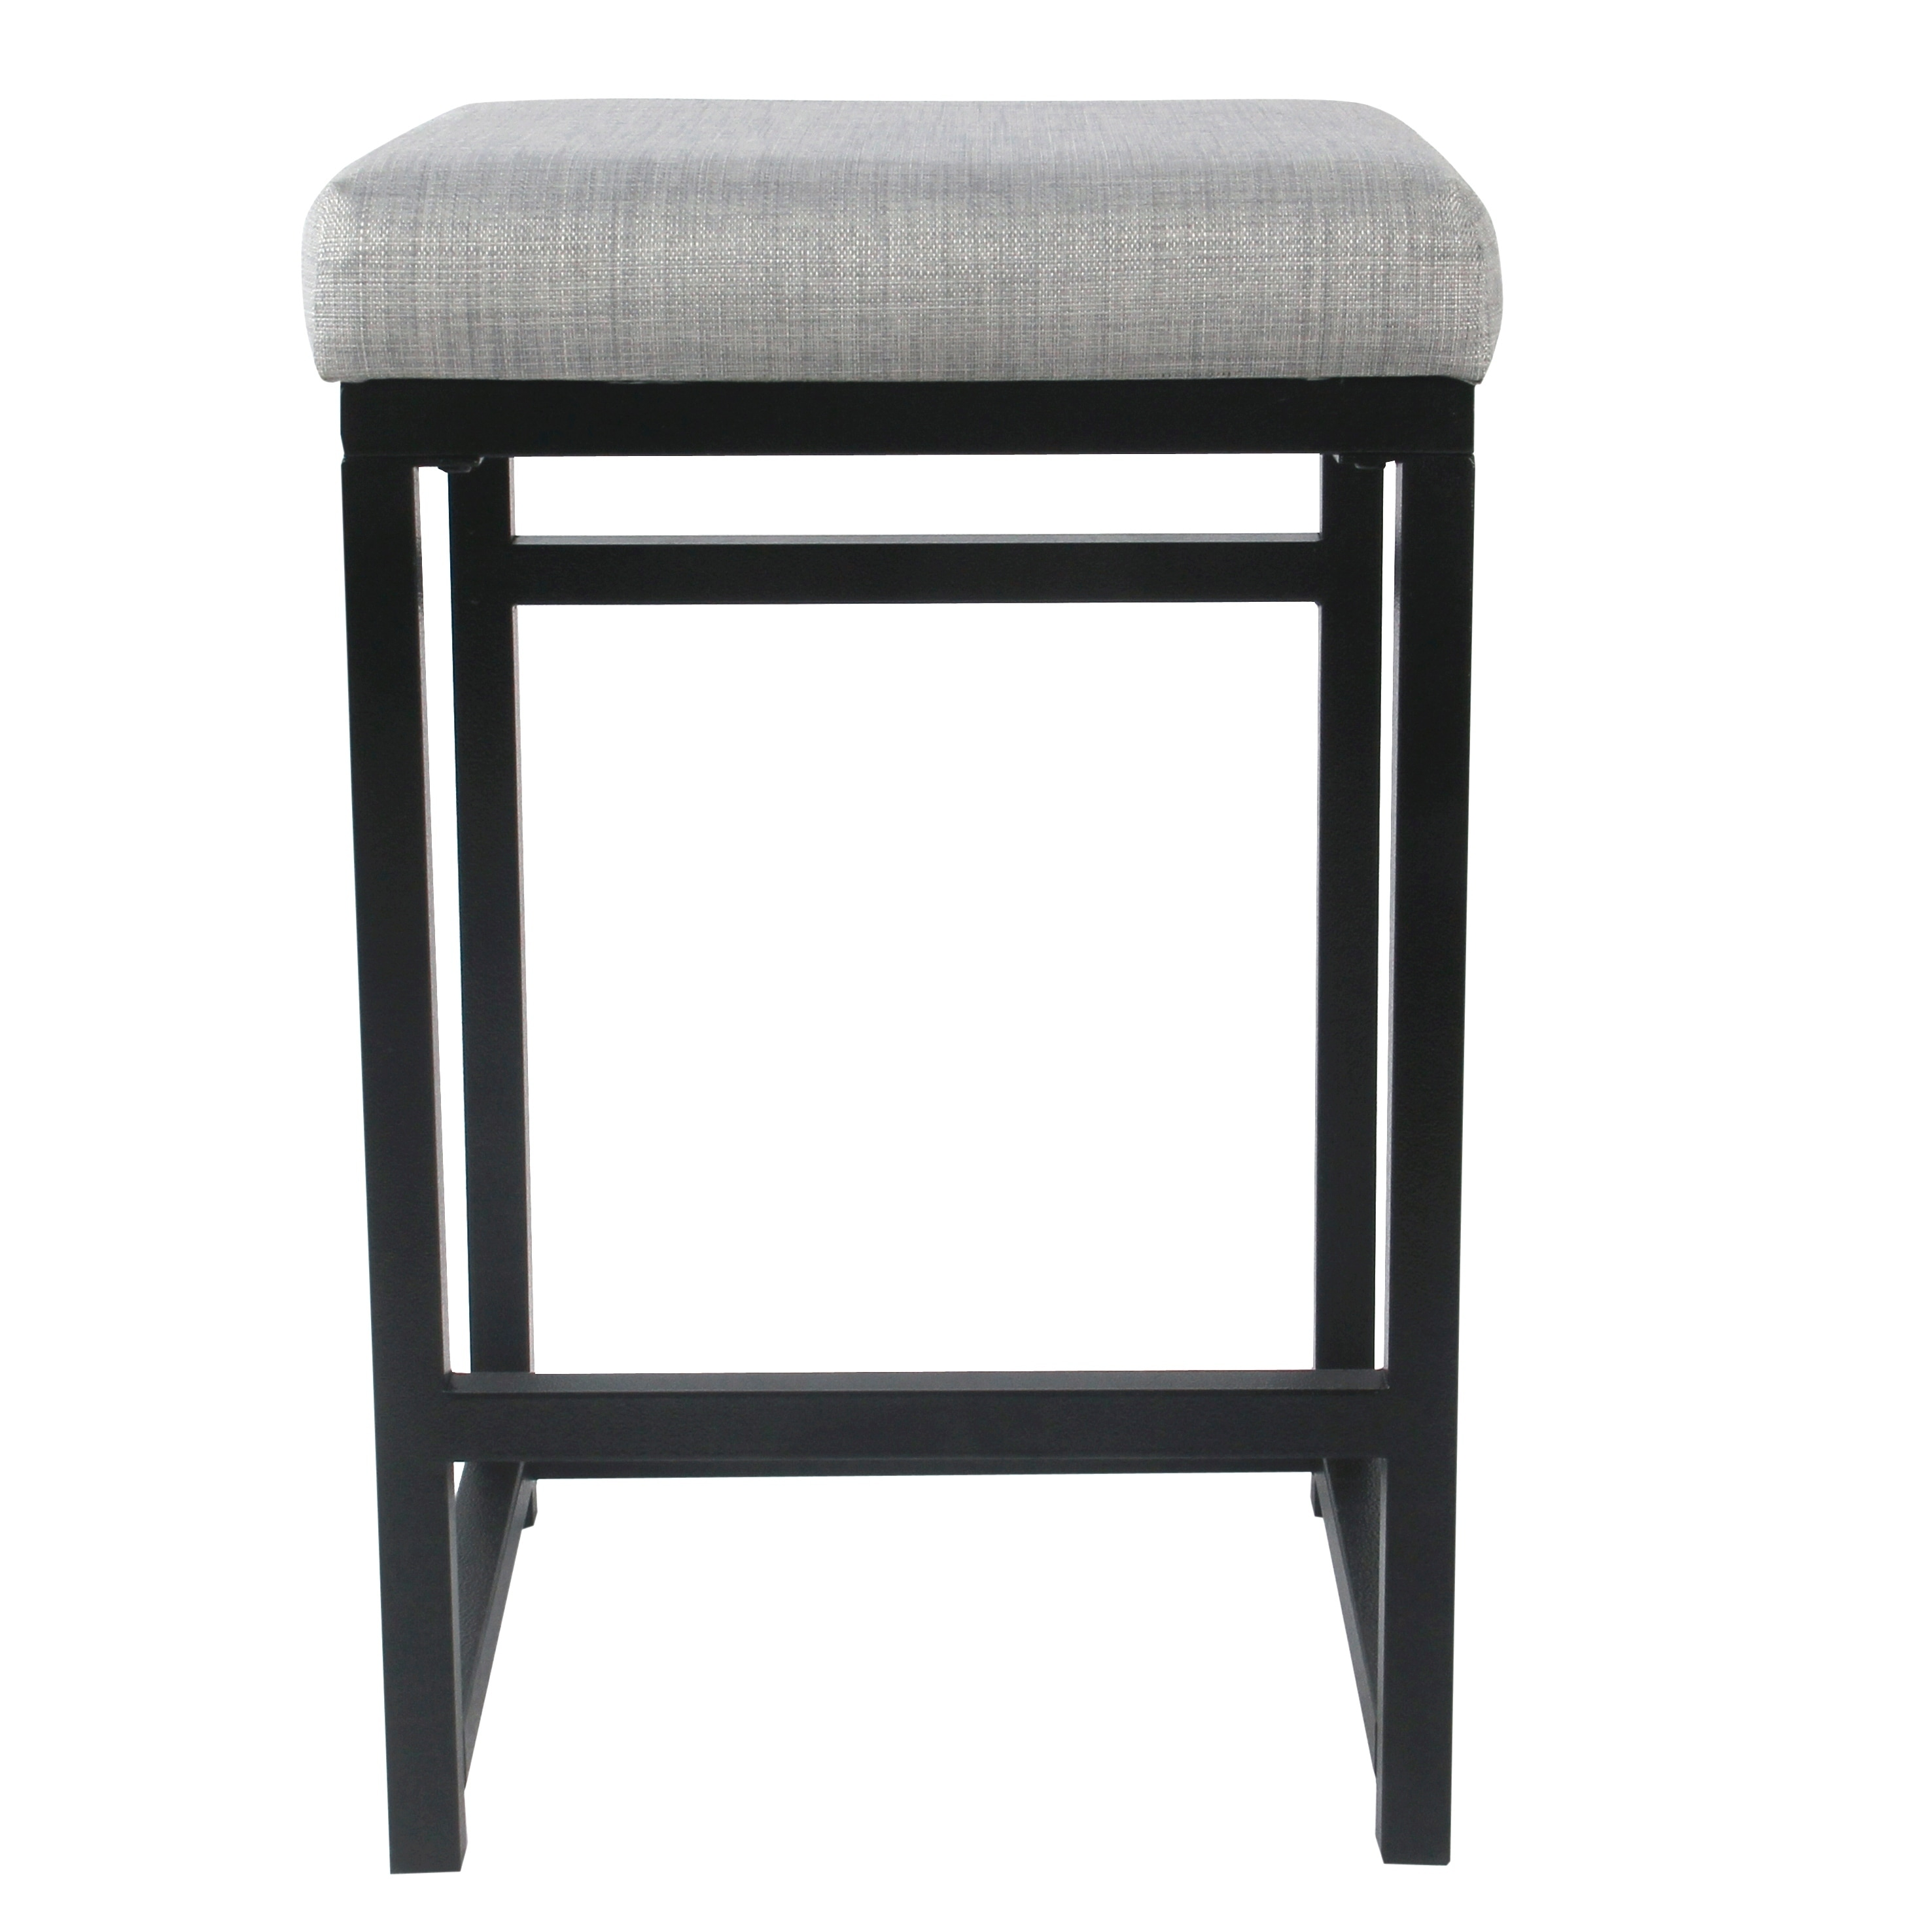 homepop open back metal counter stool free accent table cool patio furniture ikea base storage trunk coffee threshold seal mini side with wheels tall round bar and chairs wooden